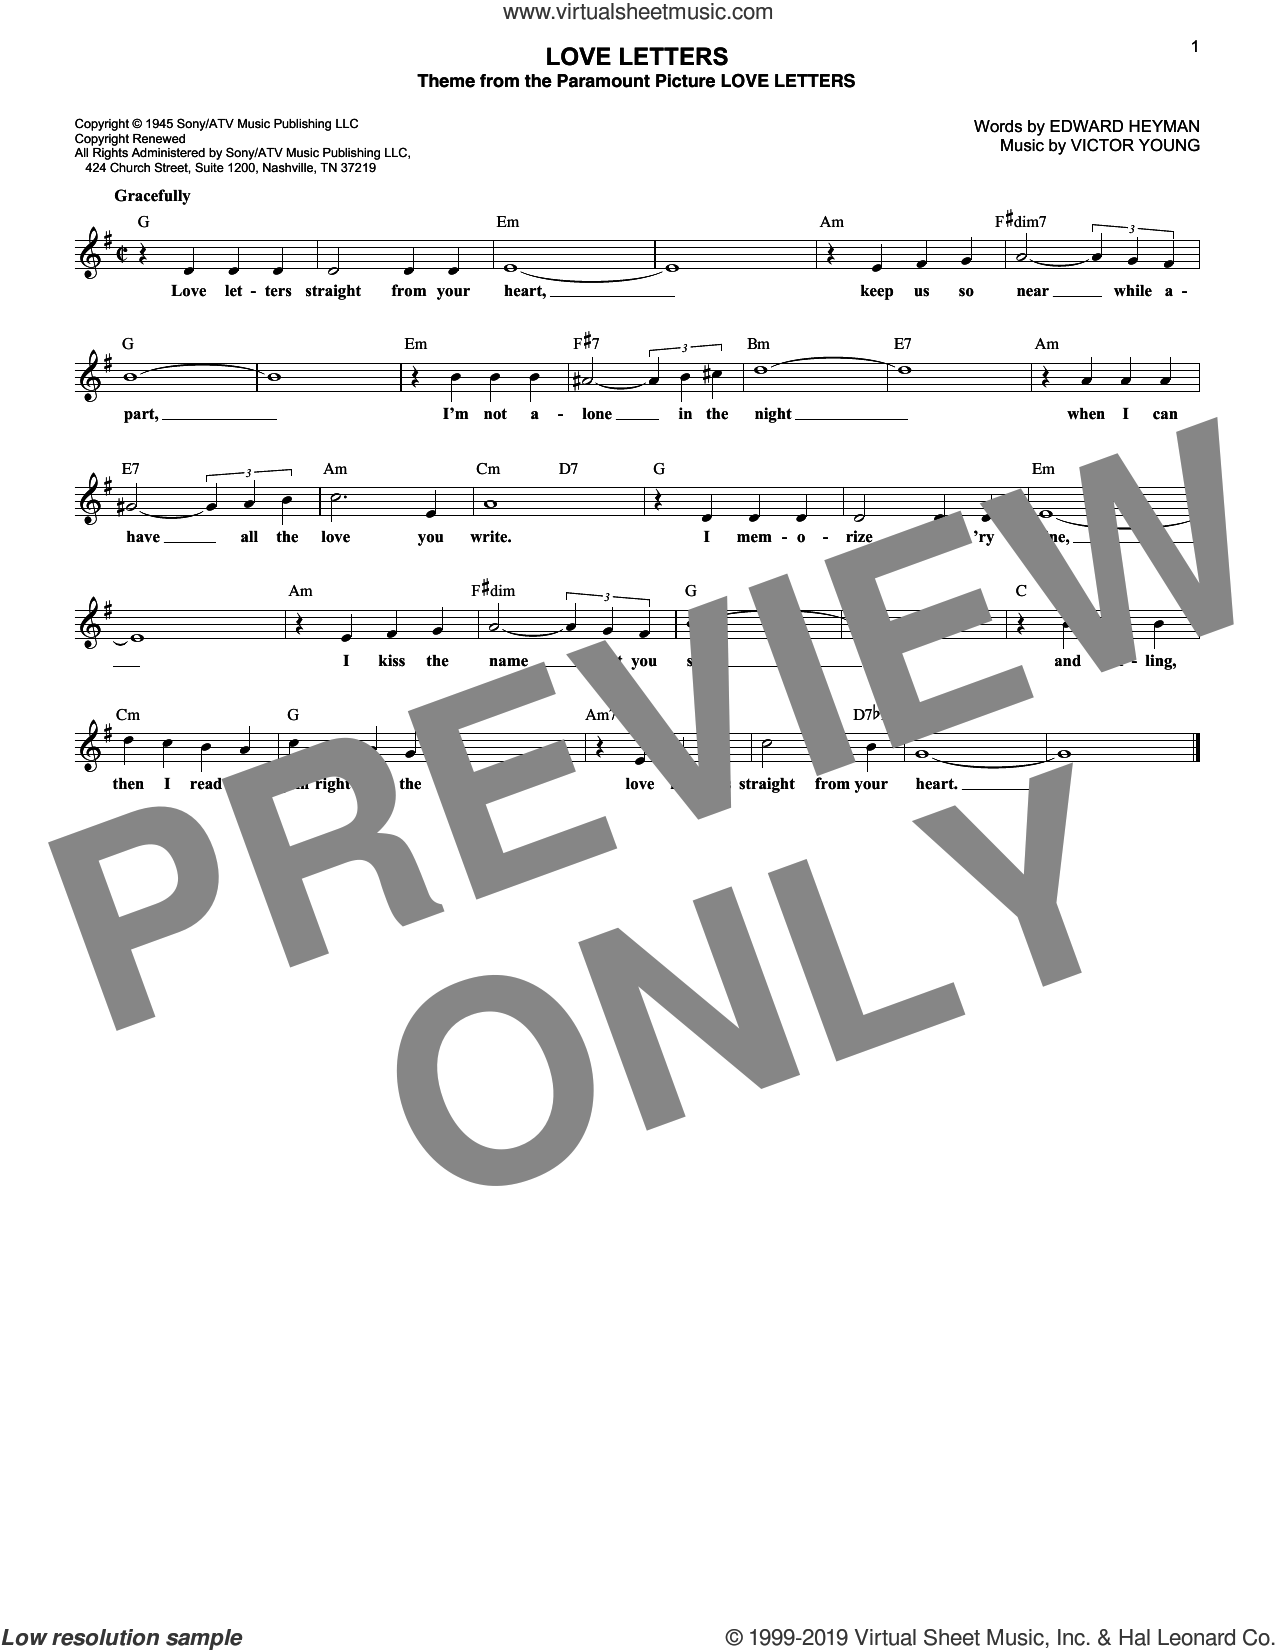 Love Letters sheet music for voice and other instruments (fake book) by Edward Heyman, Bonnie Raitt, Elton John, Elvis Presley, Ketty Lester, Rob Schneiderman and Victor Young, intermediate skill level